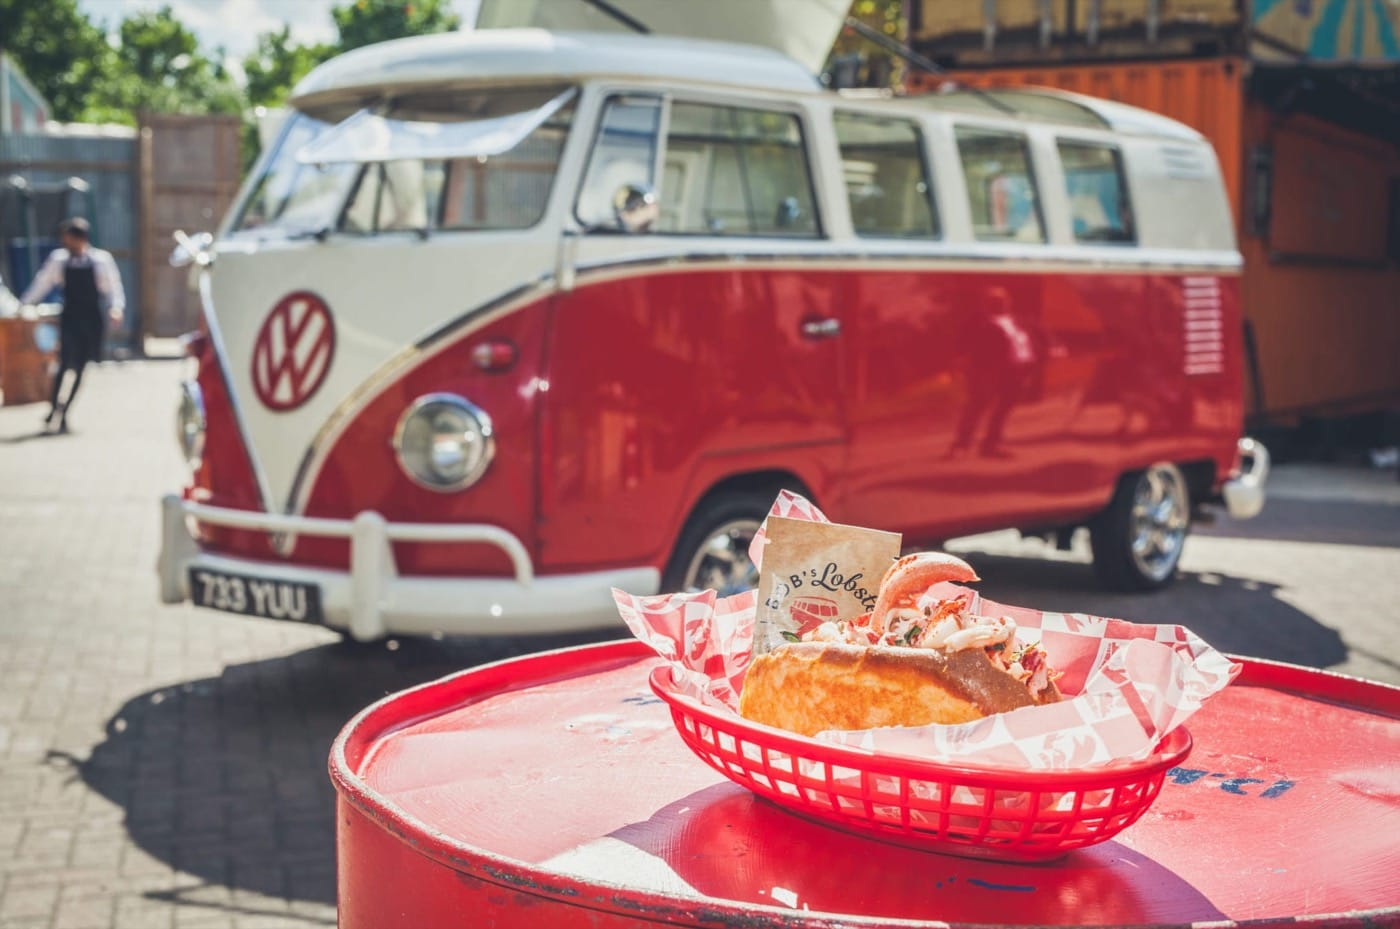 Feast-It-BOBs-Lobster-Burger-Street-Food-London-Event-Catering-Hire-Mobile-Caterer-Book-Now-three